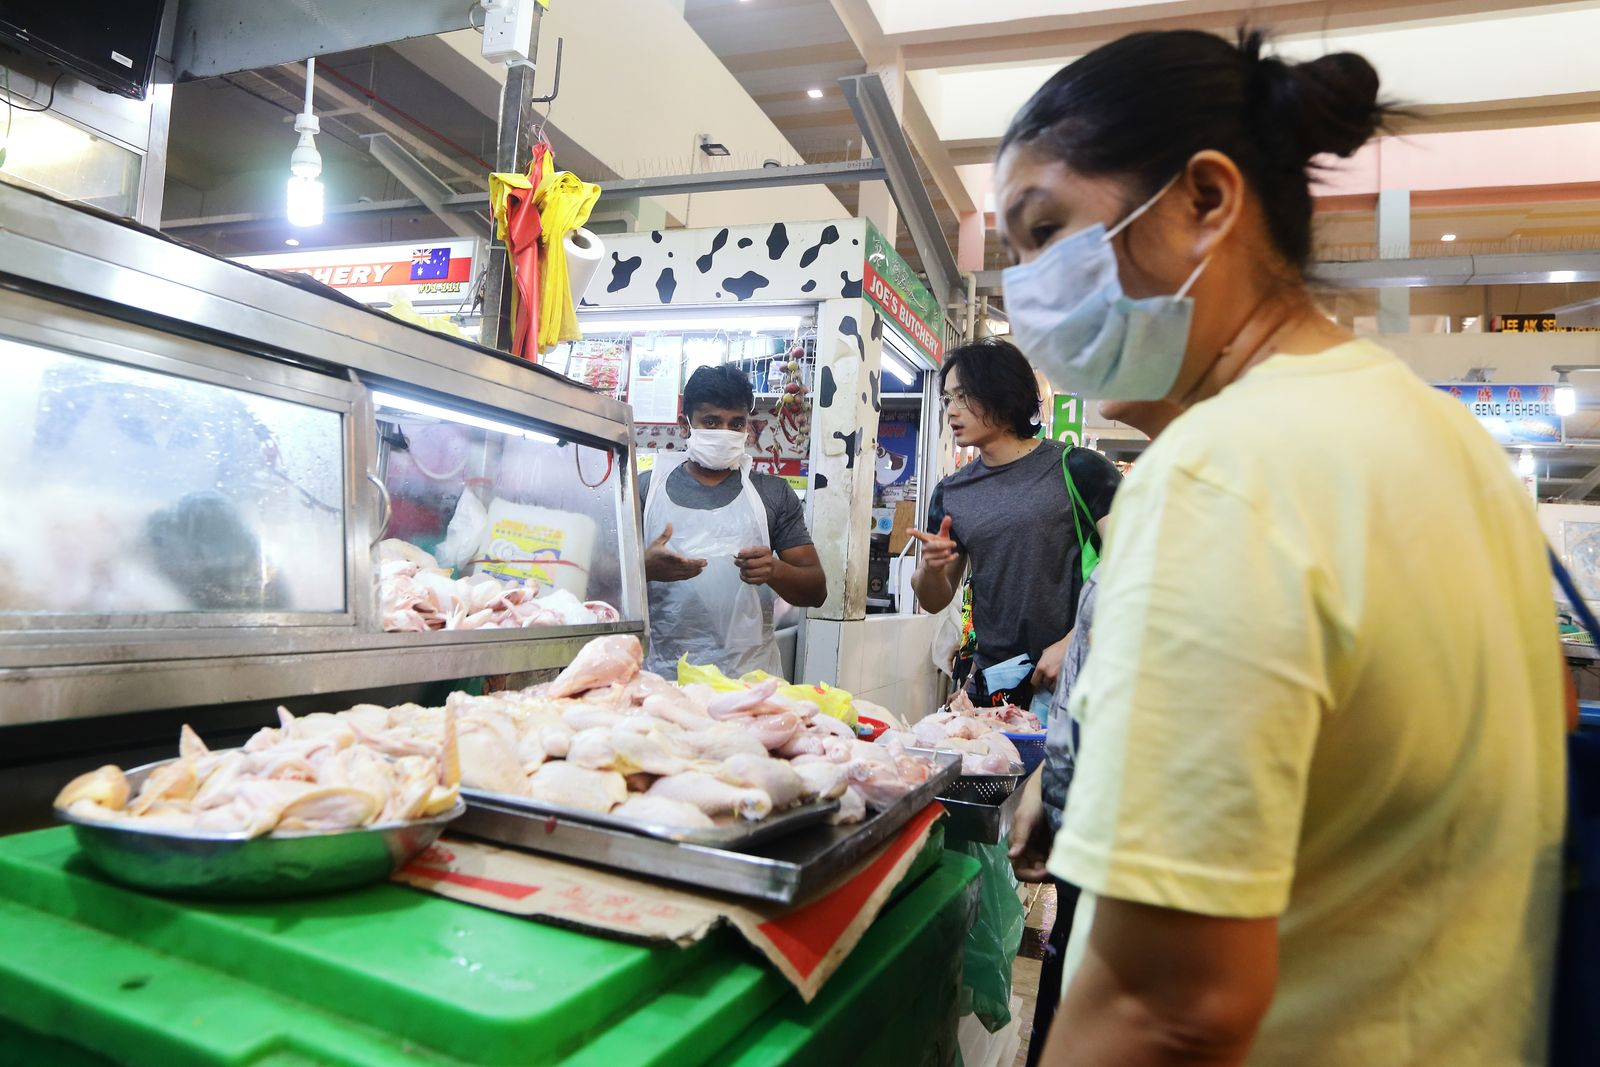 Concern In Singapore As The Coronavirus Continue To Spread